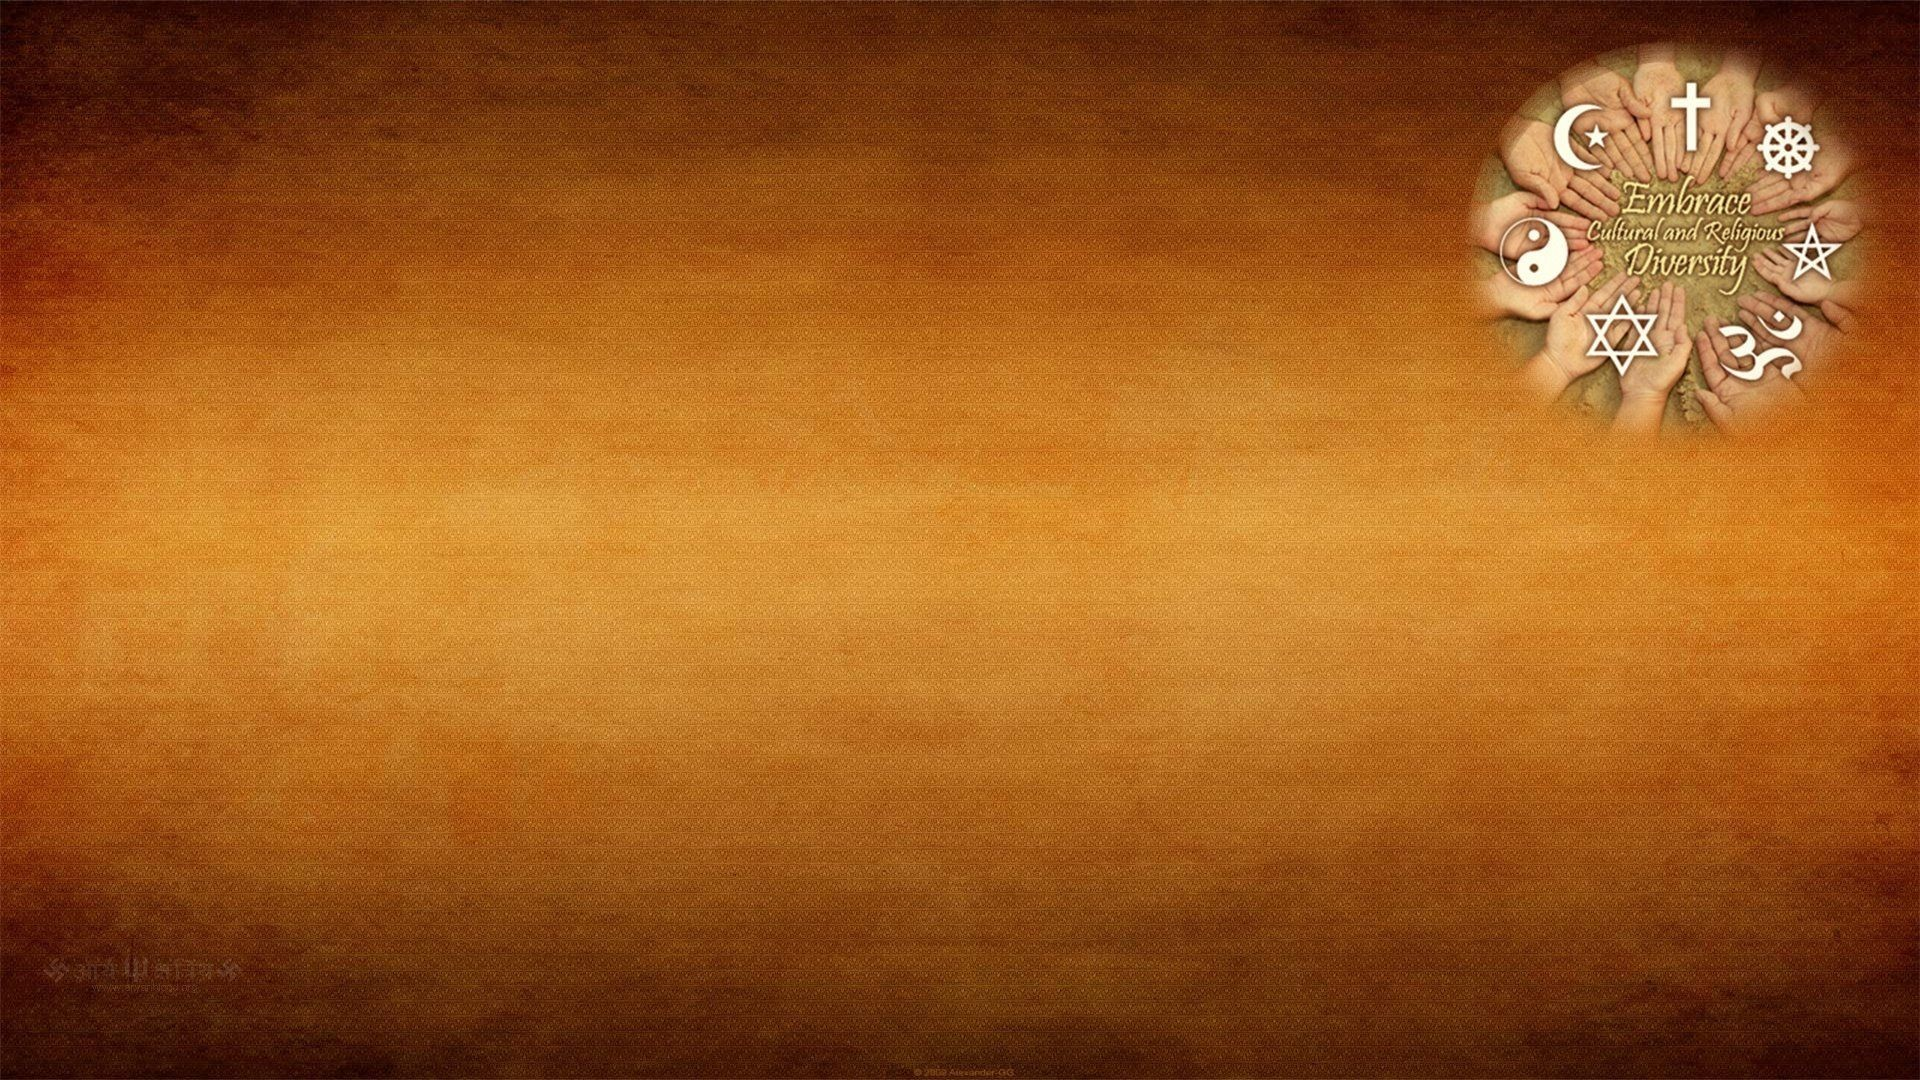 Res: 1920x1080, undefined Religious Wallpaper (30 Wallpapers) | Adorable Wallpapers